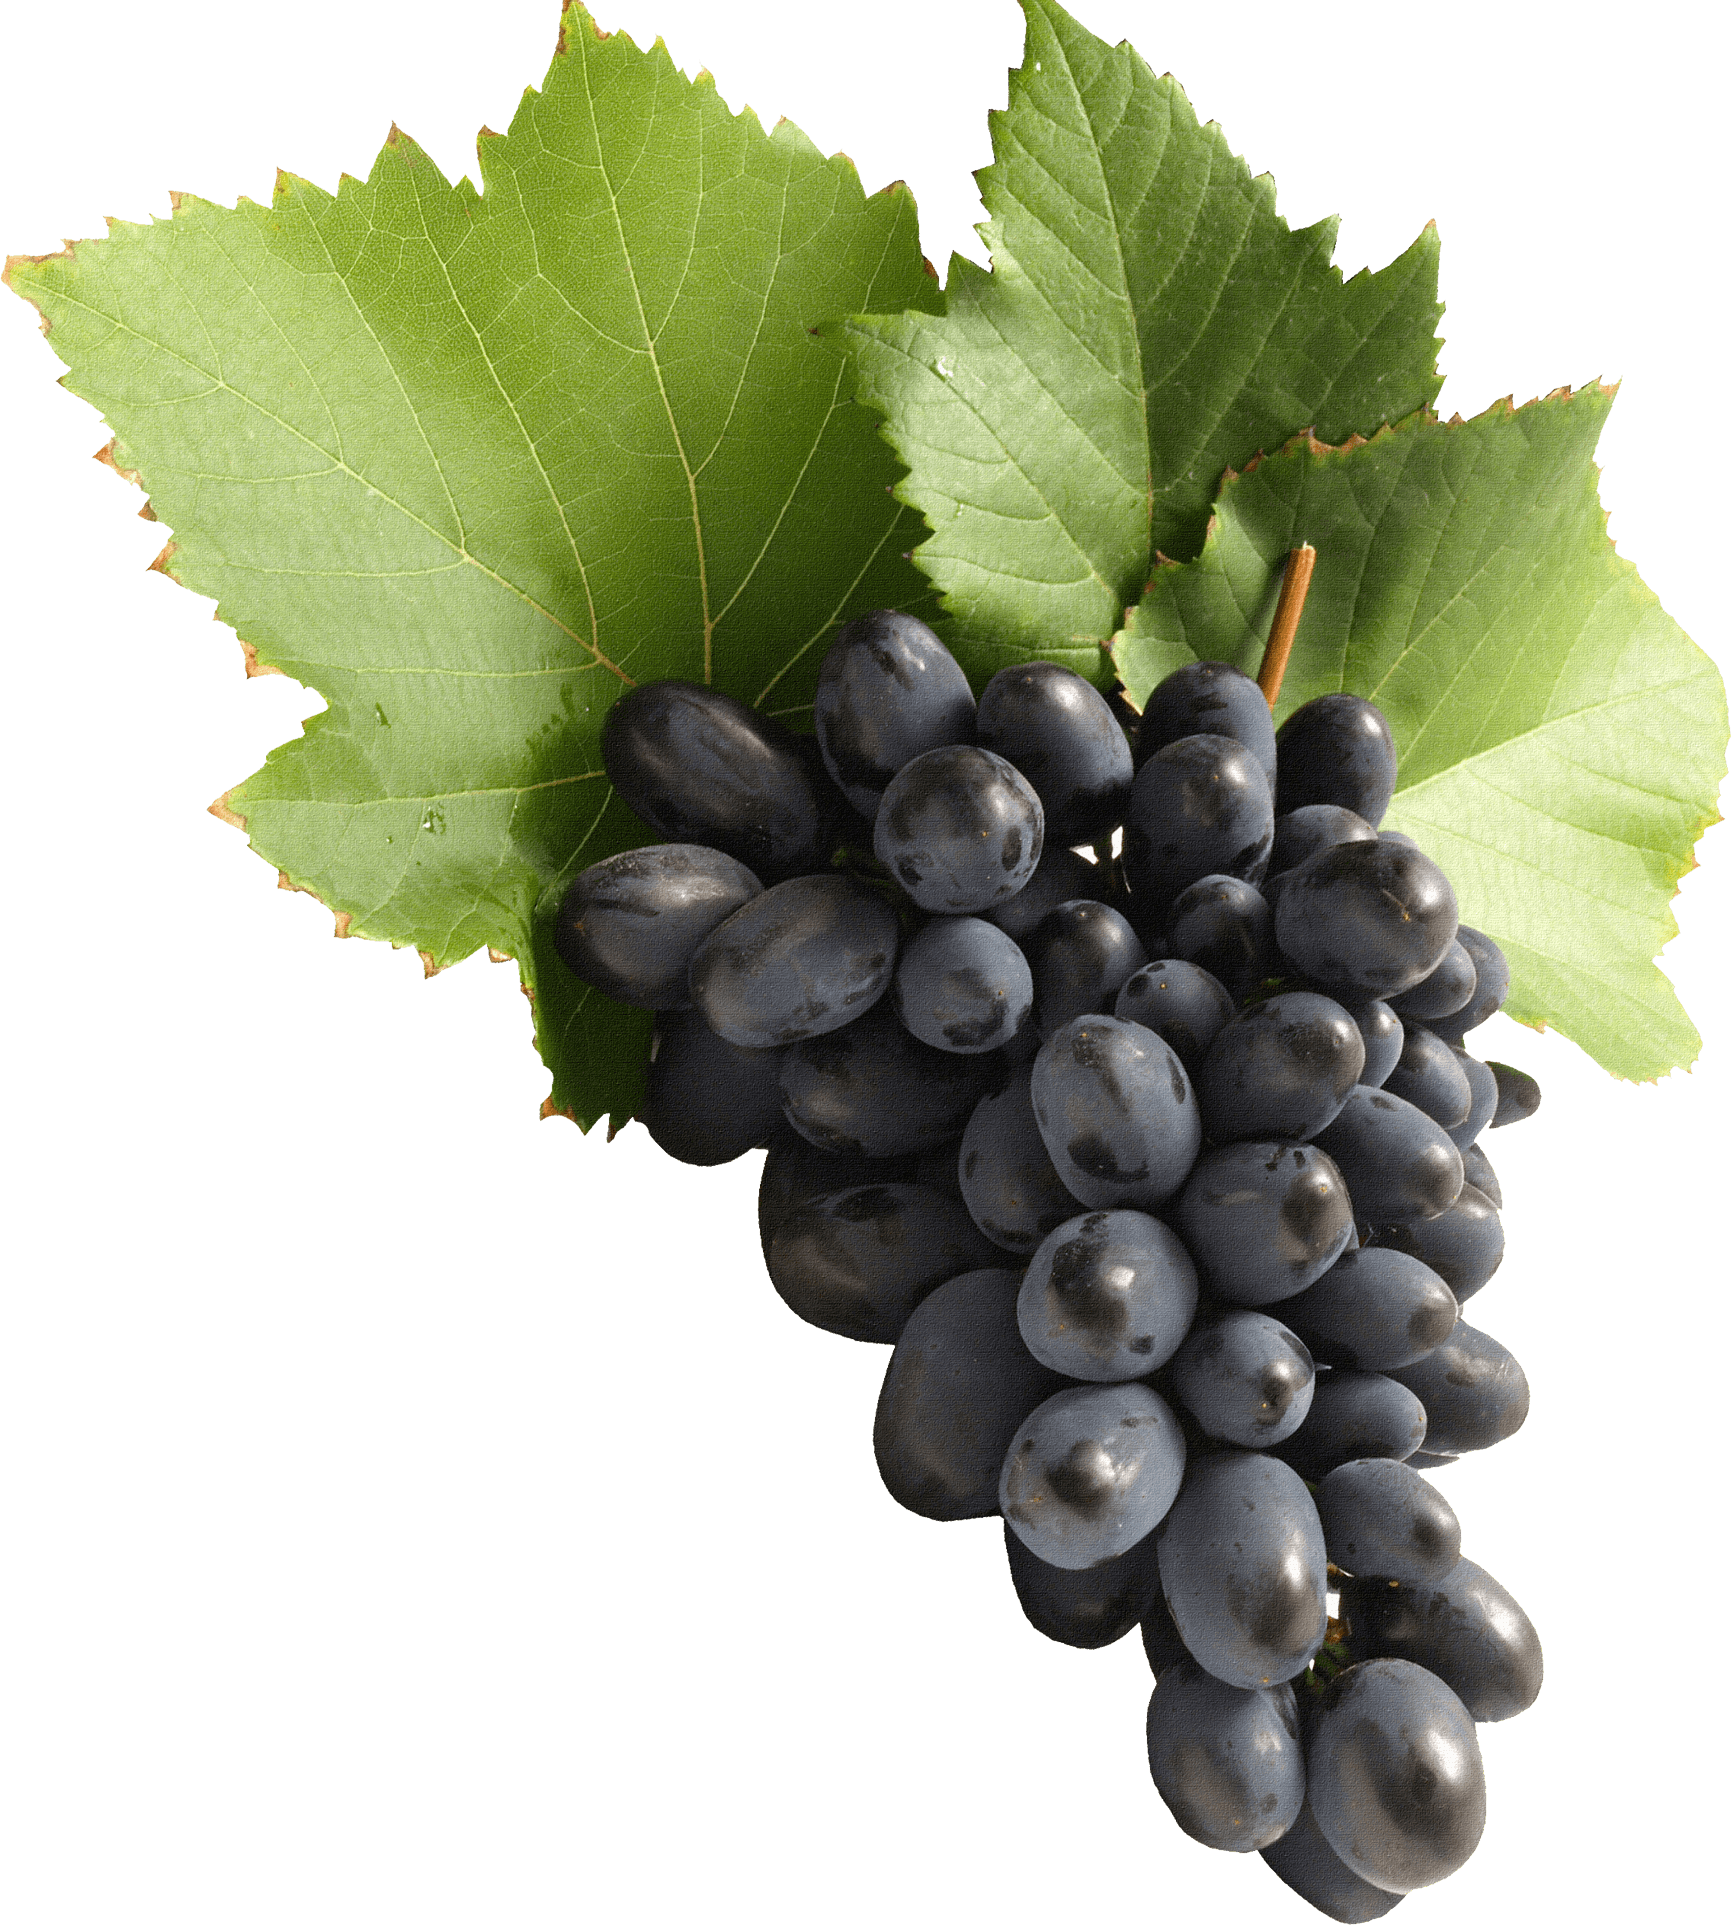 Png images stickpng blue. Transparent grapes high quality black and white stock